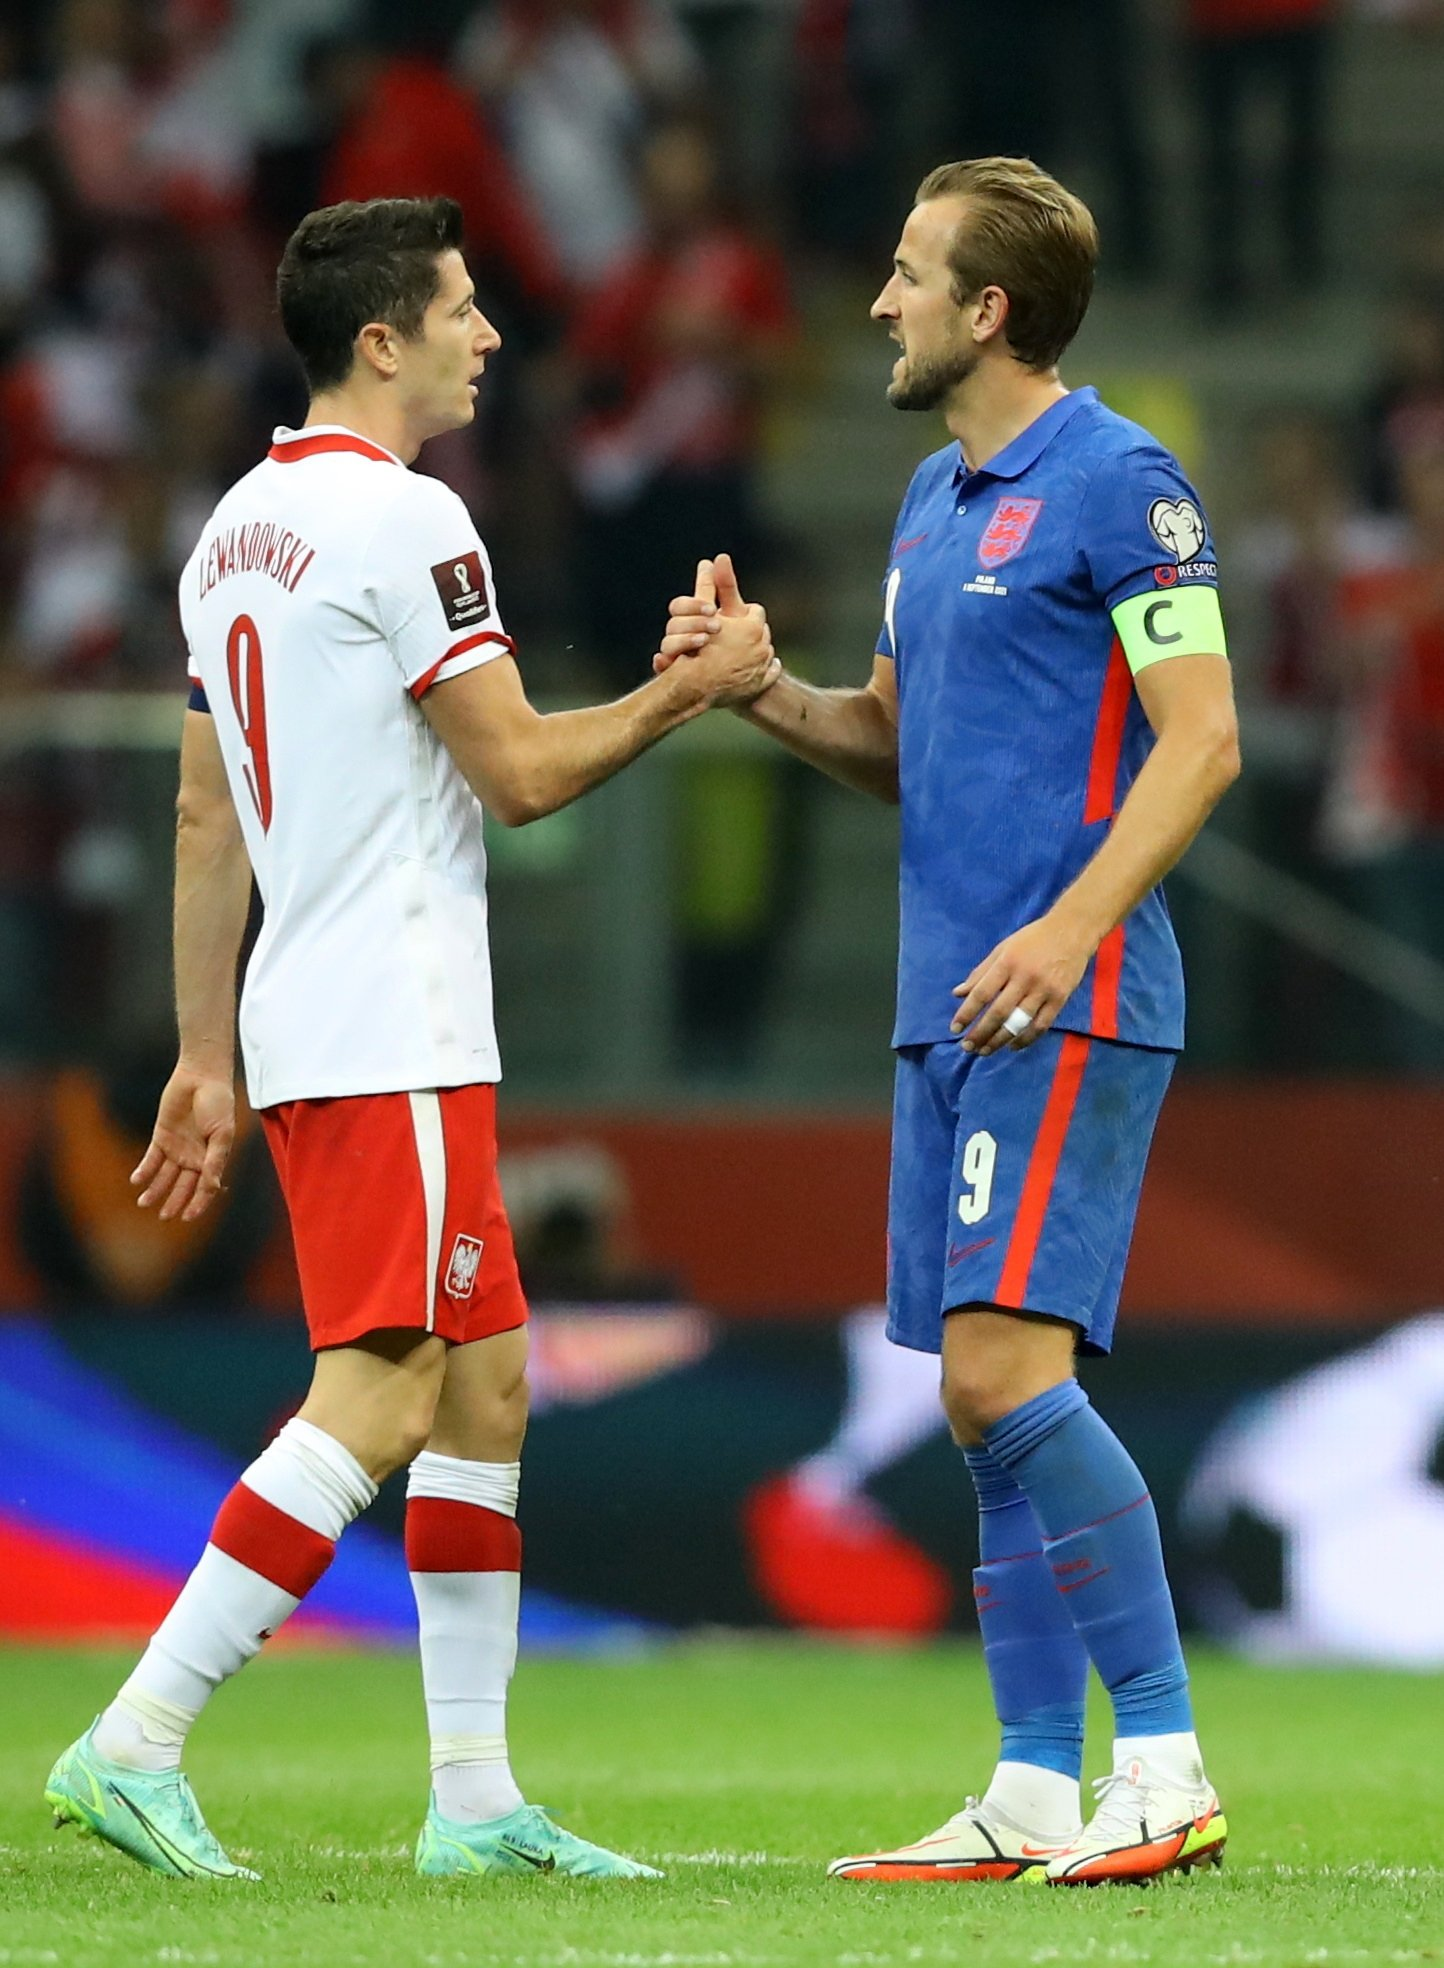 Poland's Robert Lewandowski shakes hands with England's Harry Kane after their World Cup 2022 European qualifier match in Warsaw, Poland, Sept. 8, 2021. (Reuters Photo)